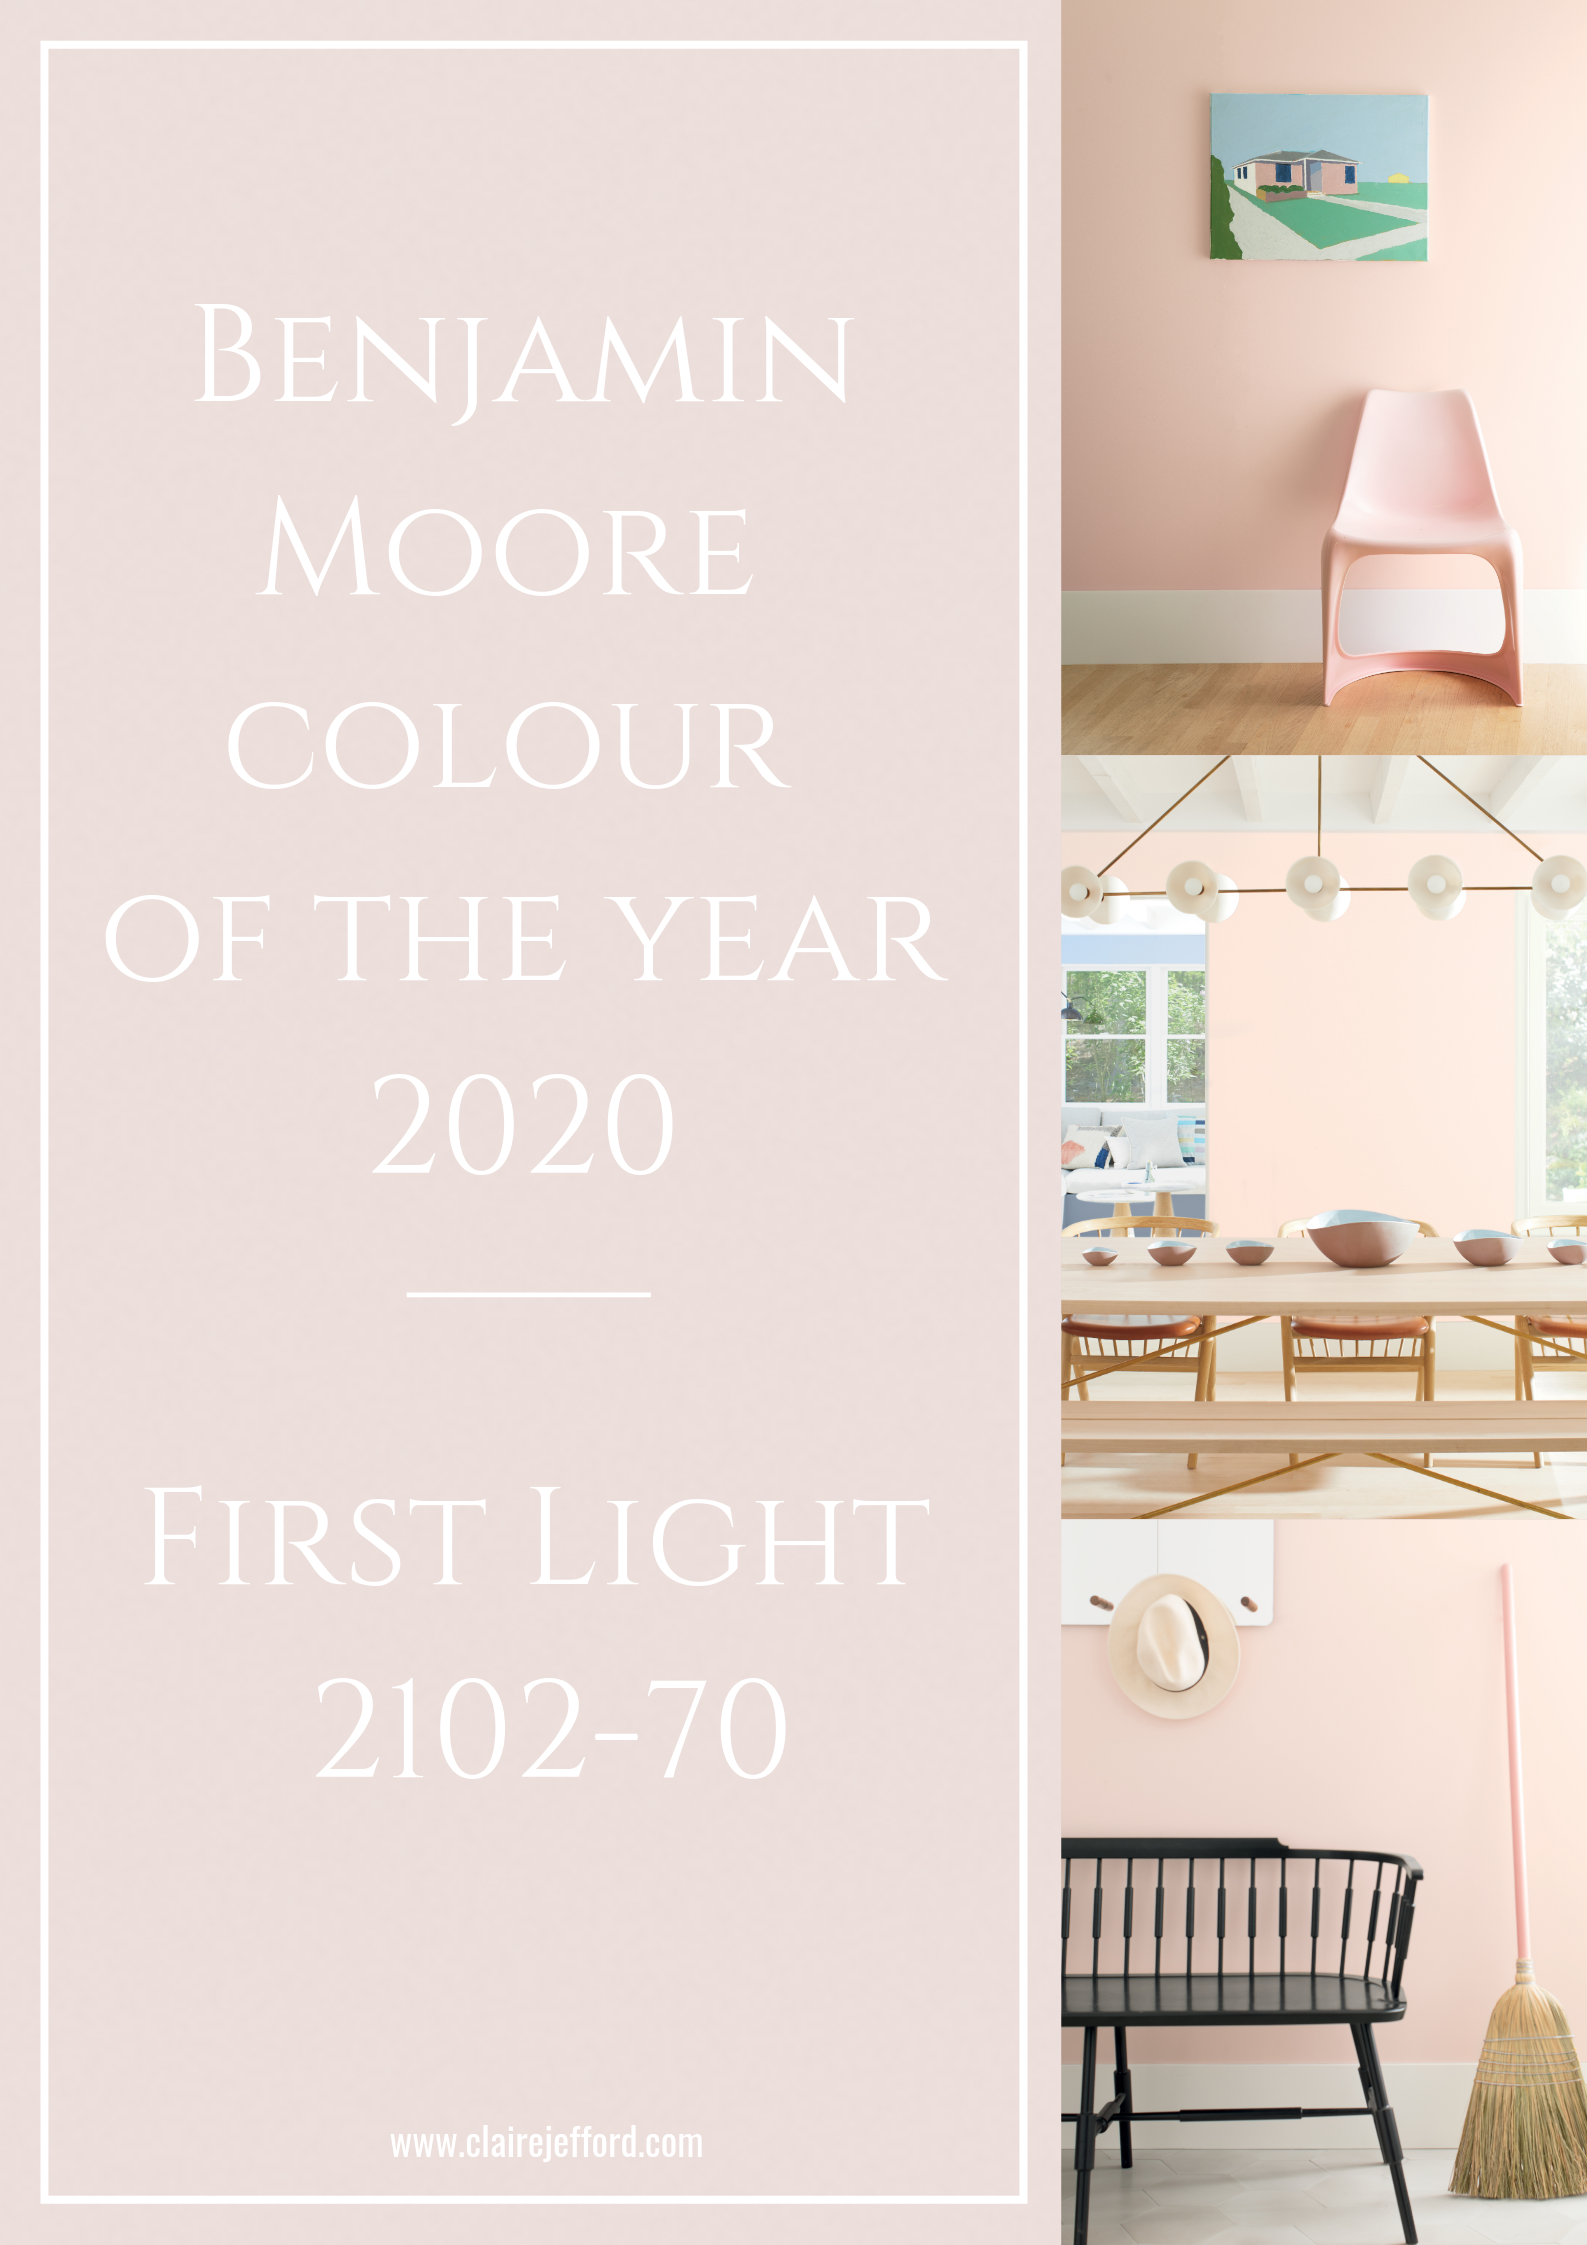 Benjamin Moore Colour of the Year 2020 (With images